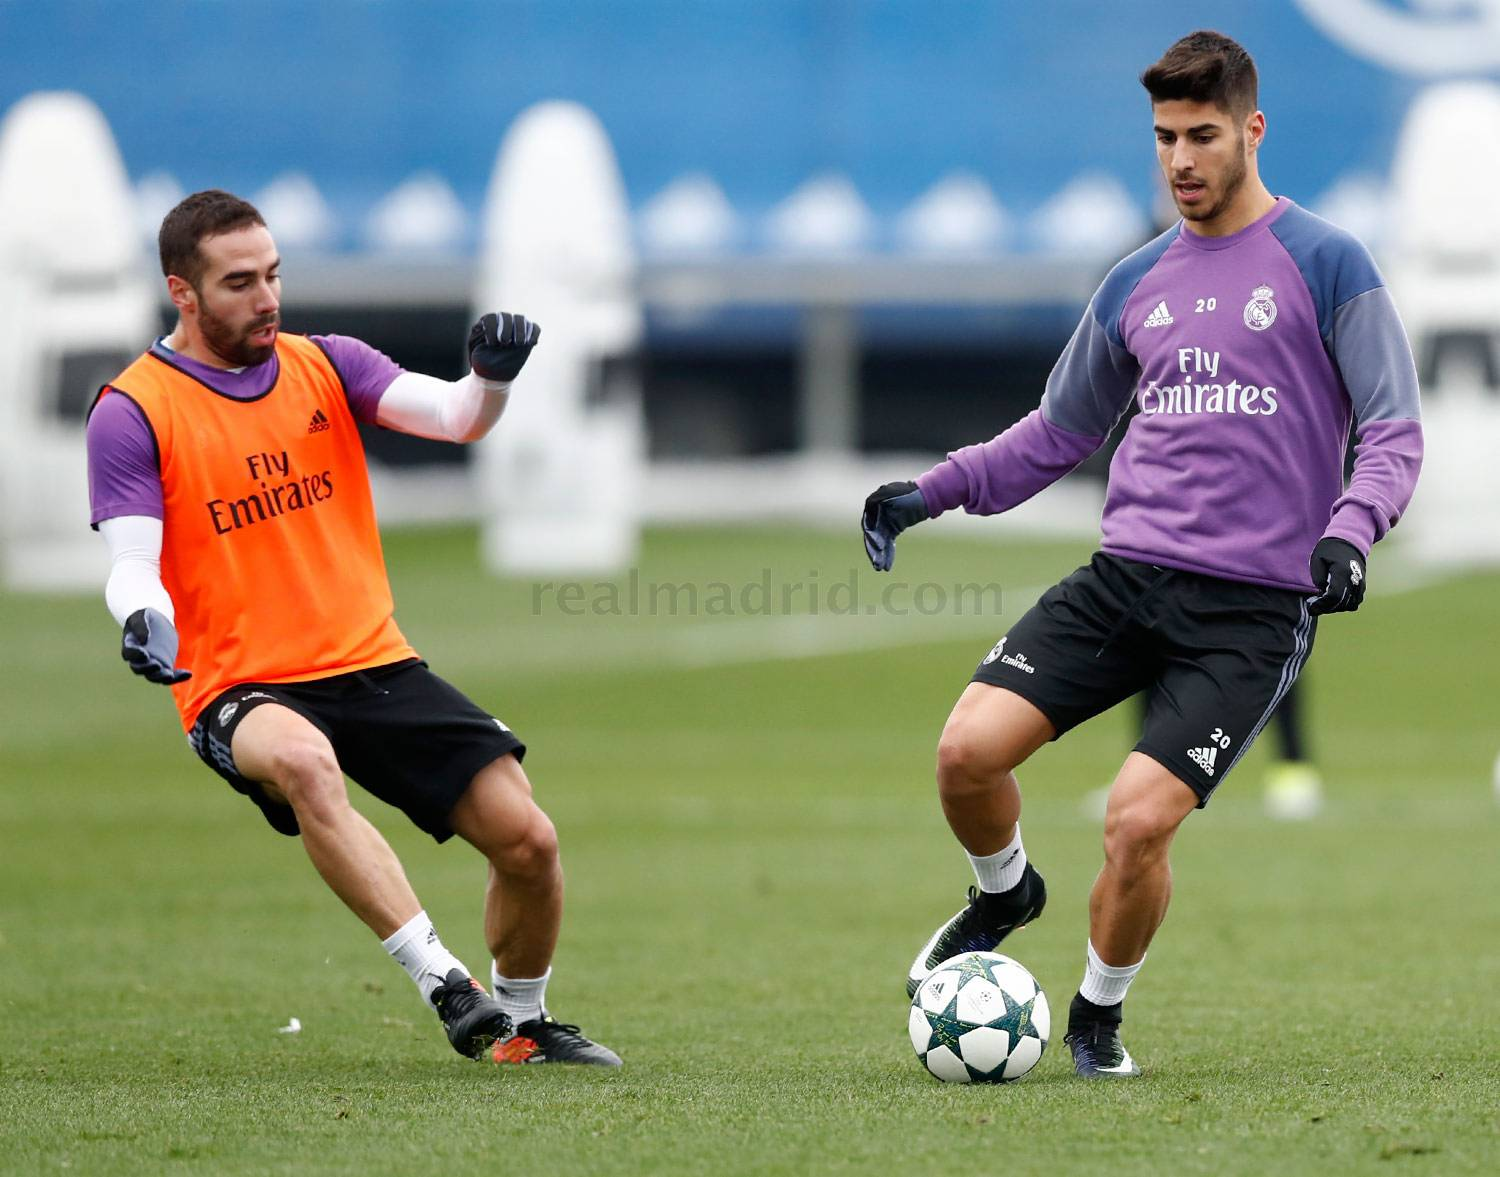 Real Madrid - Entrenamiento del Real Madrid - 05-12-2016